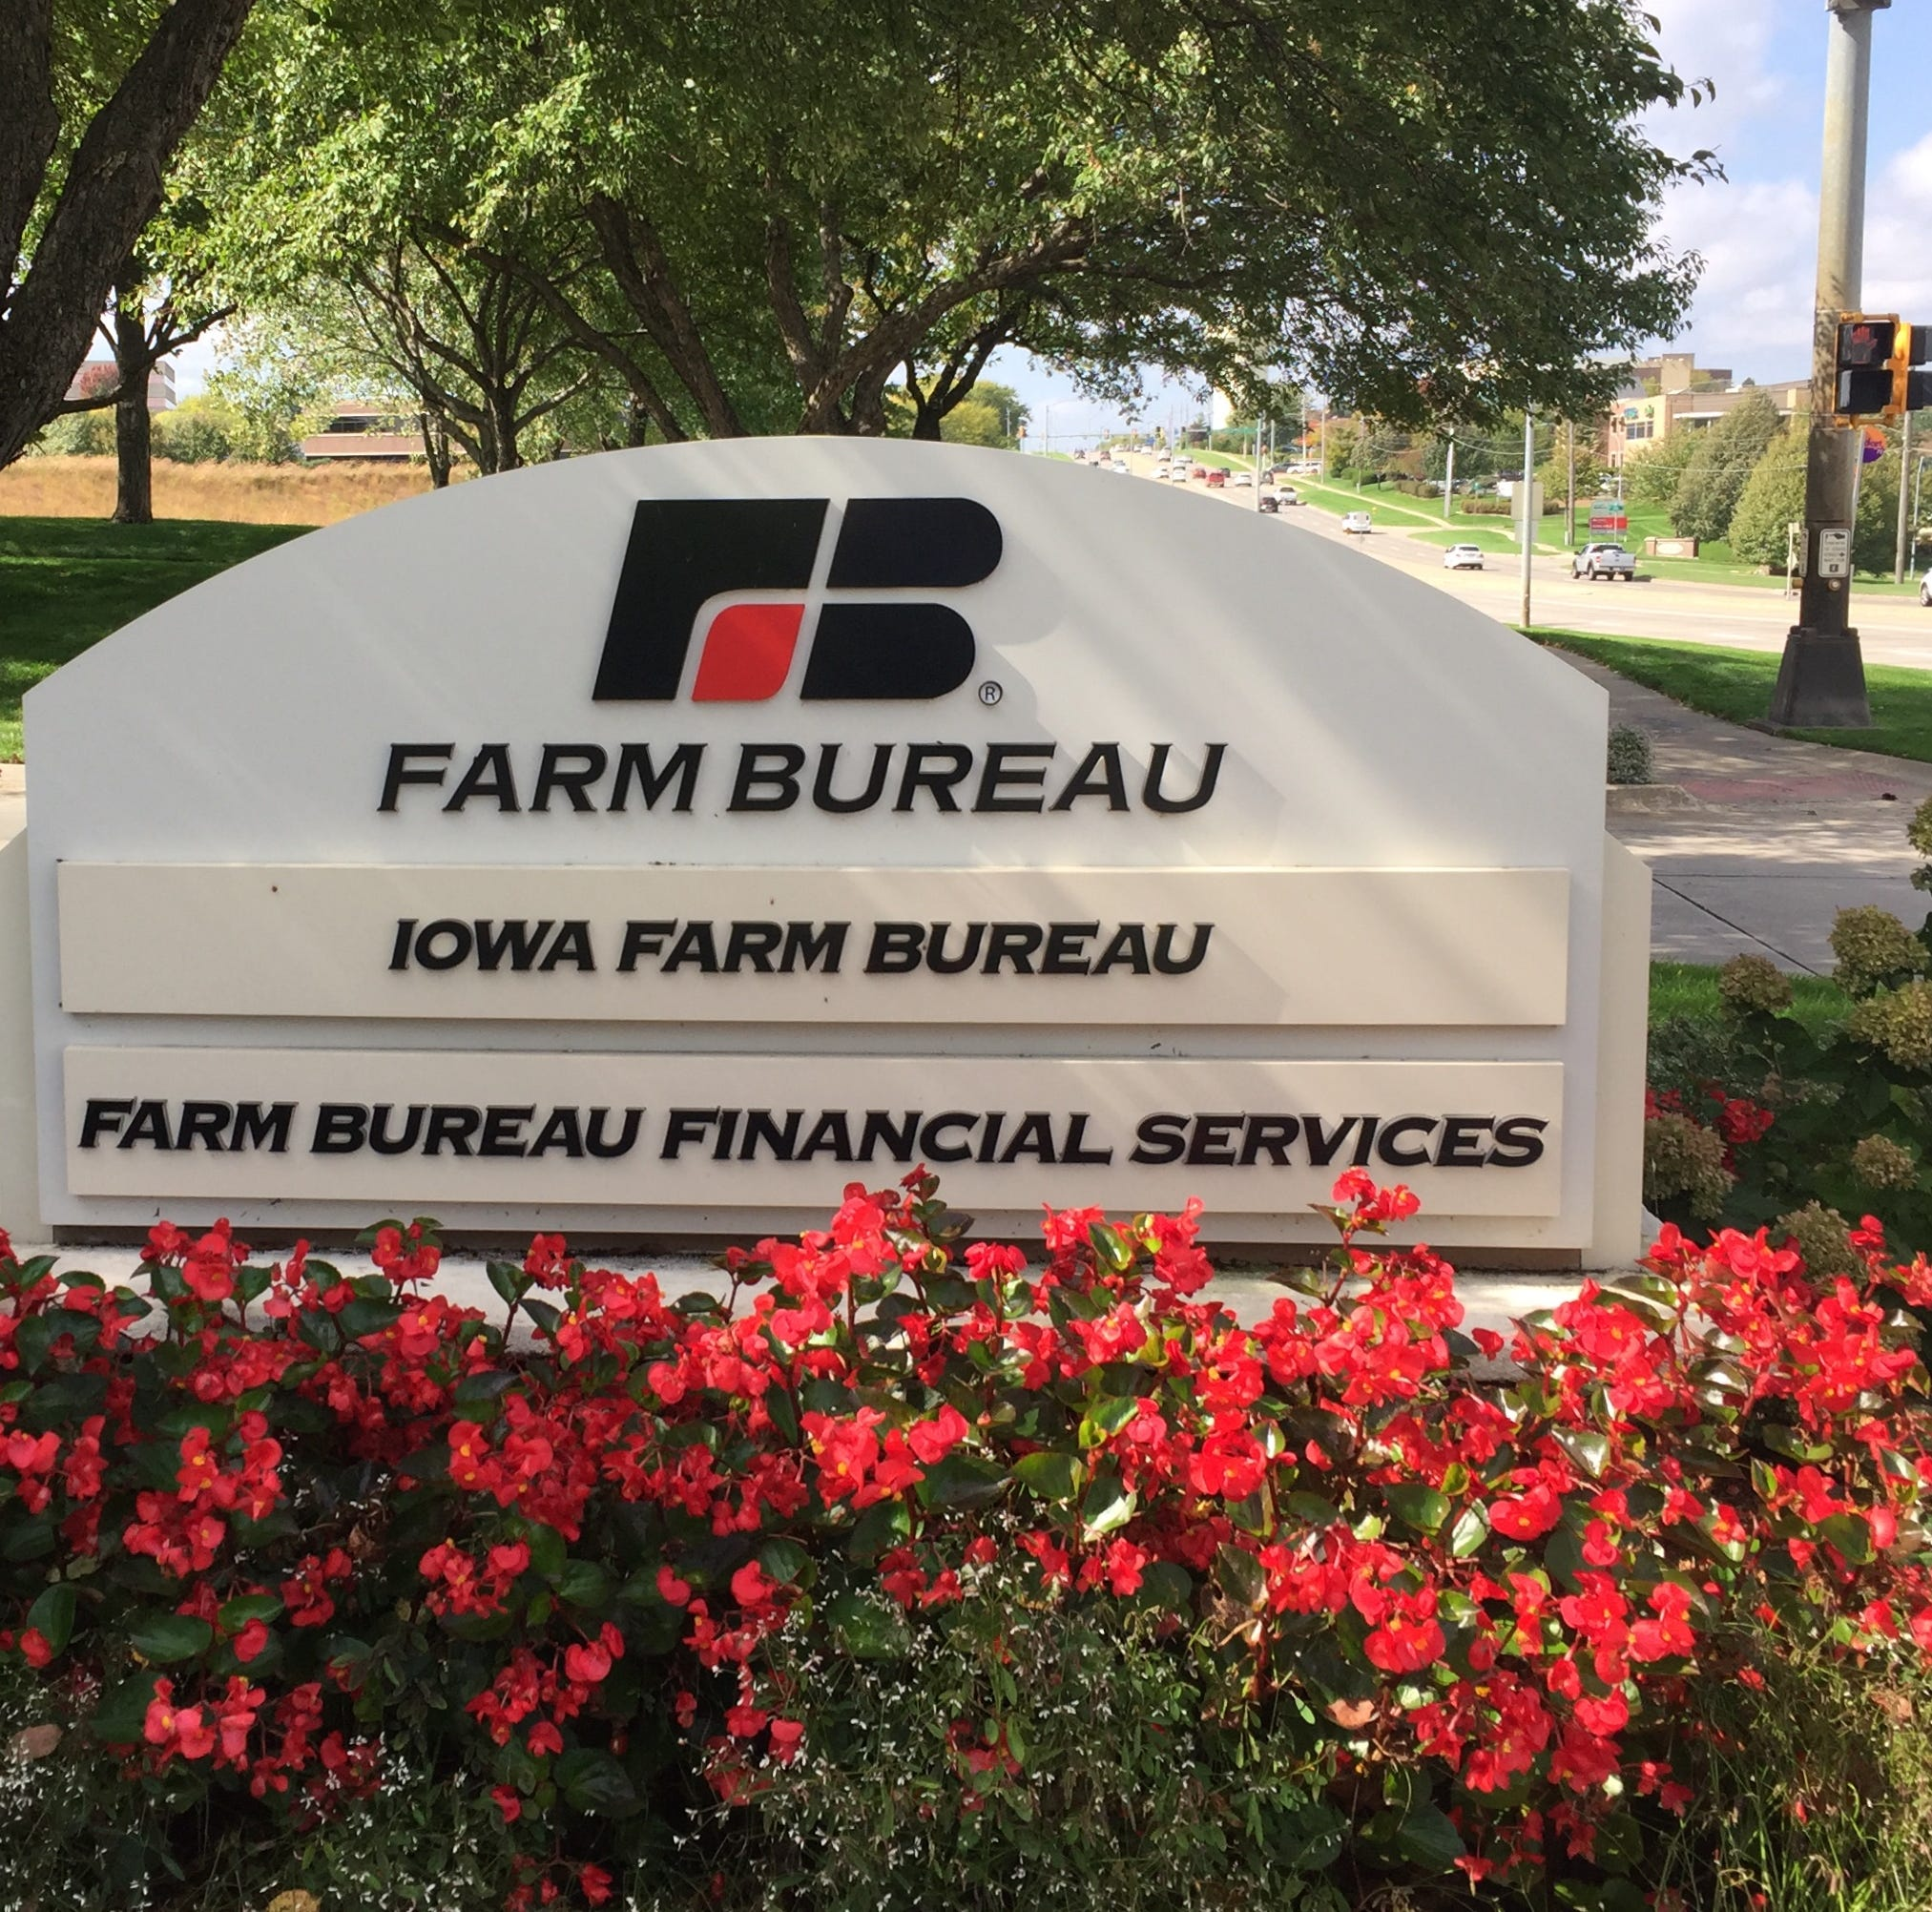 Cheaper Farm Bureau health policies could turn applicants away for pre-existing issues